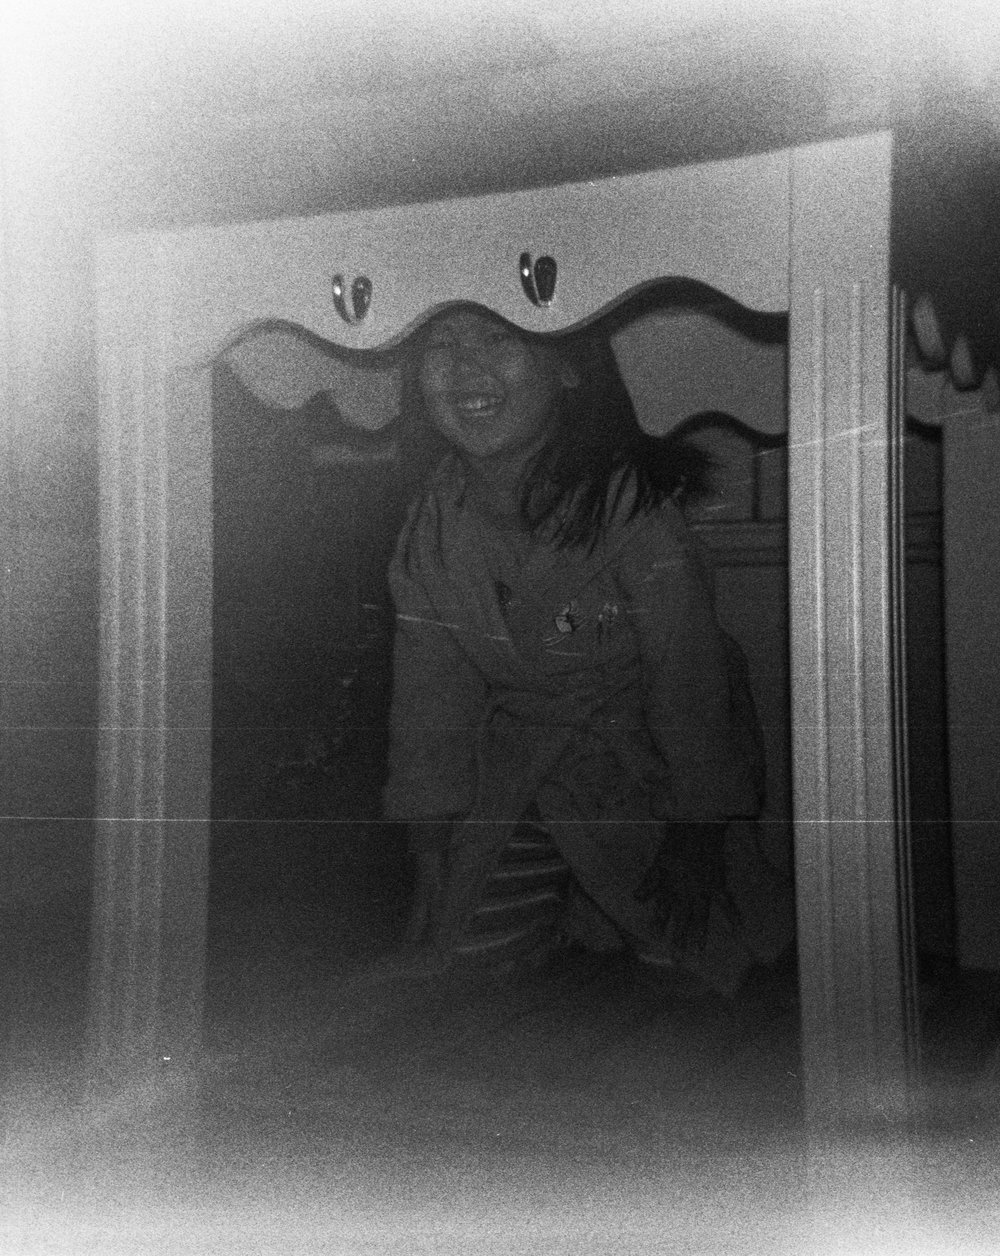 Holga 120GCFN; Ultrafine 400 120 B&W; D76 (stock) @ 25c for 5 mins